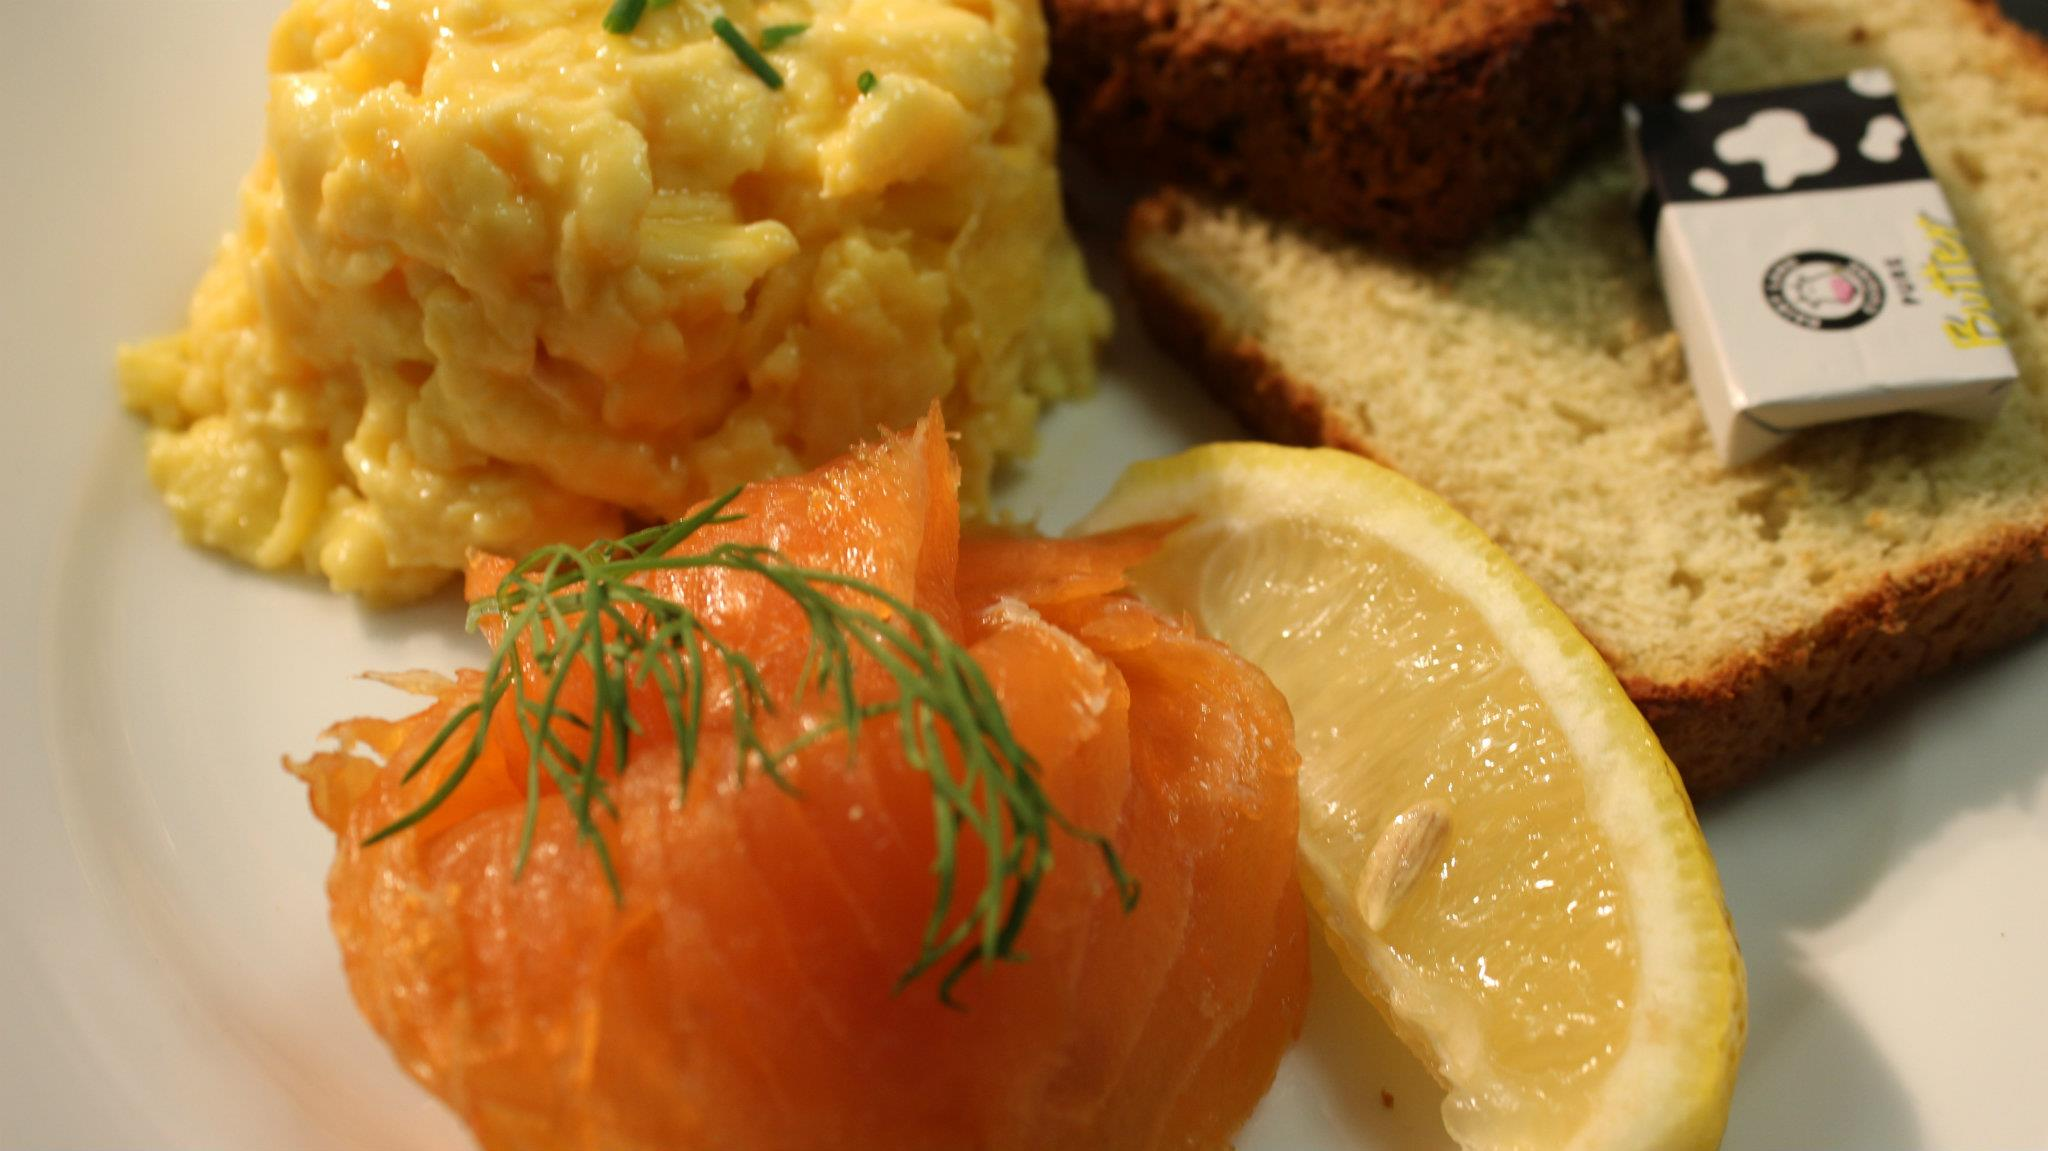 image of 愛爾蘭三文魚炒蛋早餐 Queen of Tarts Smoked Salmon and Scrambled Eggs